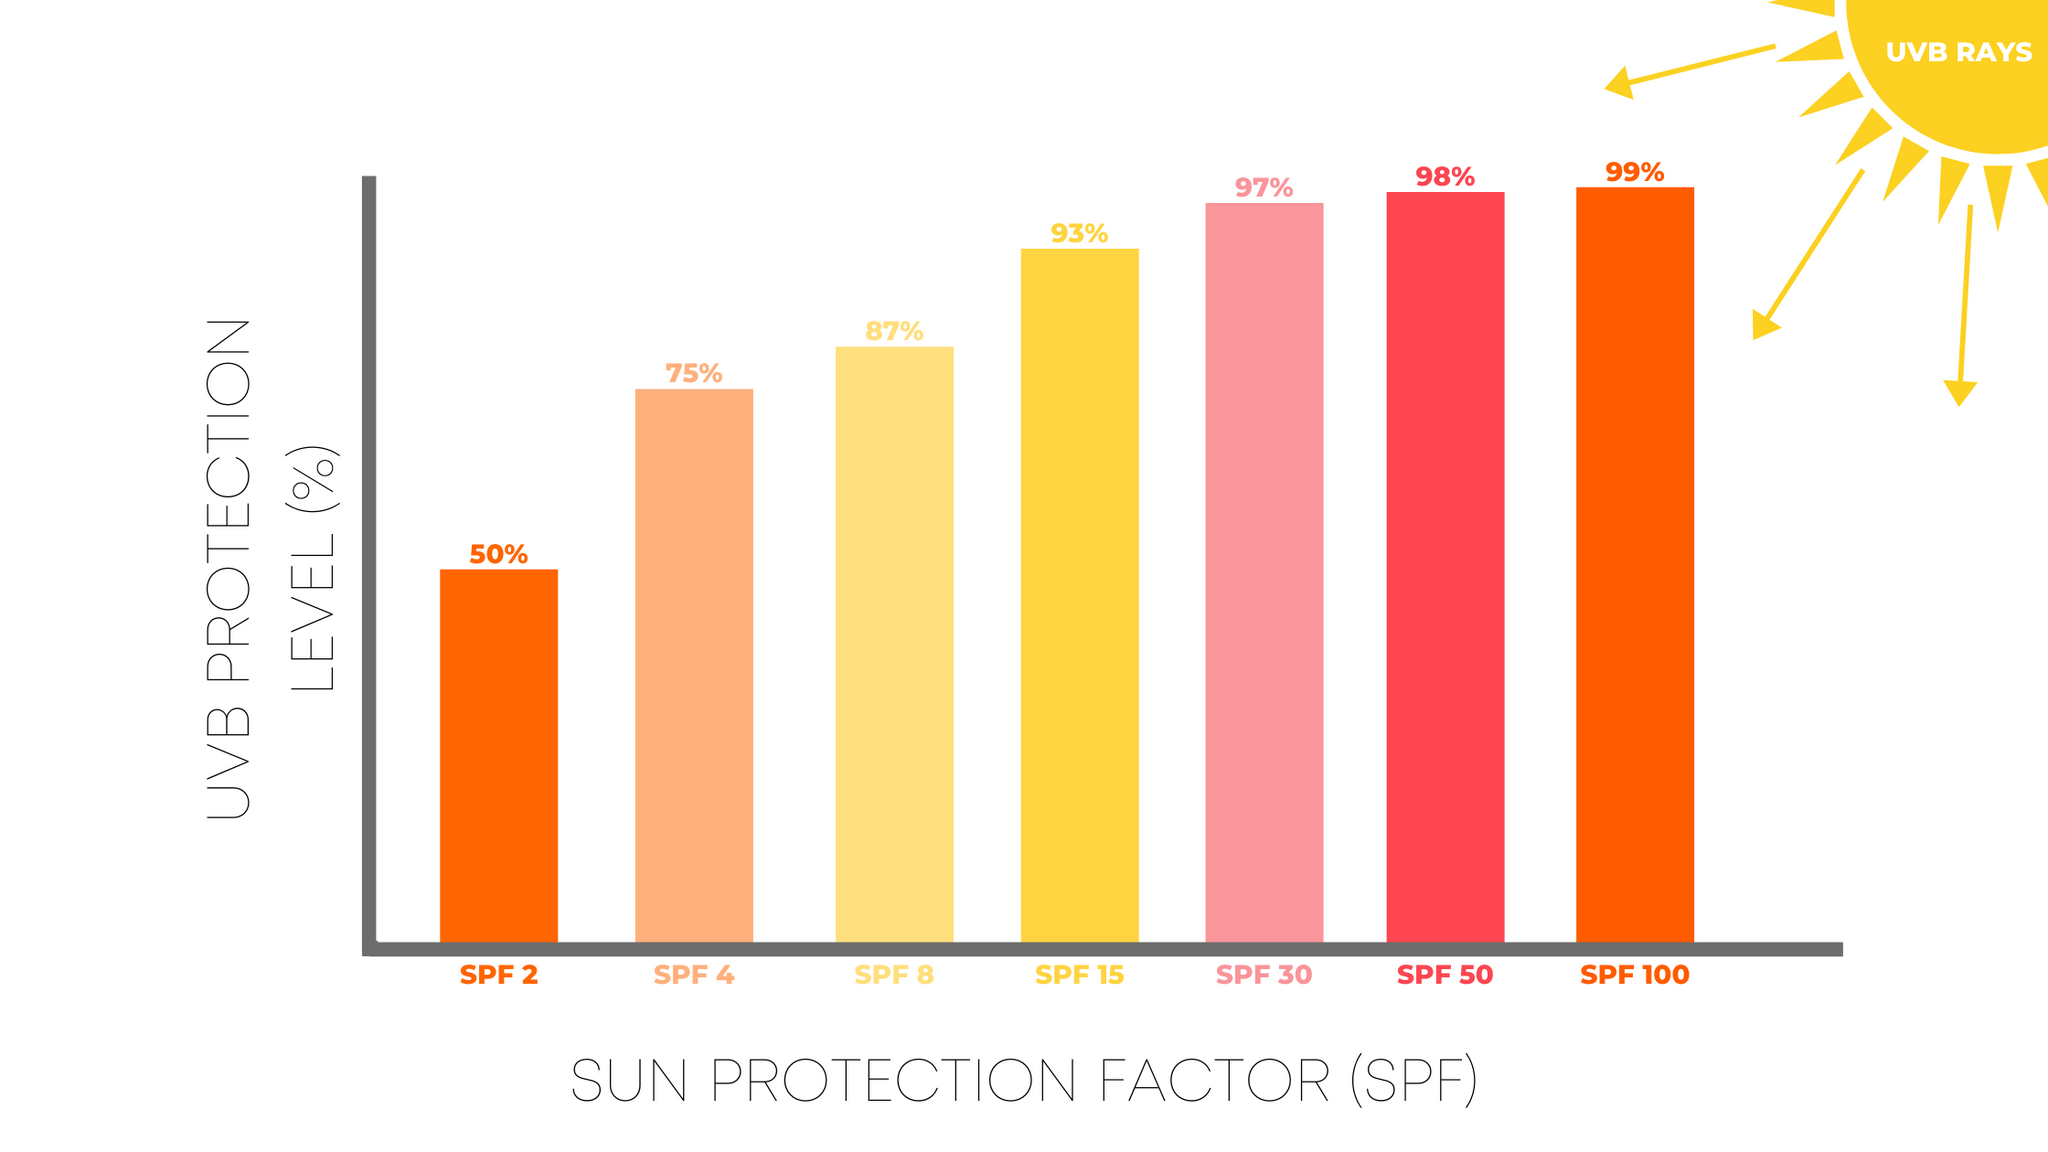 percent protection from UVB rays by SPF